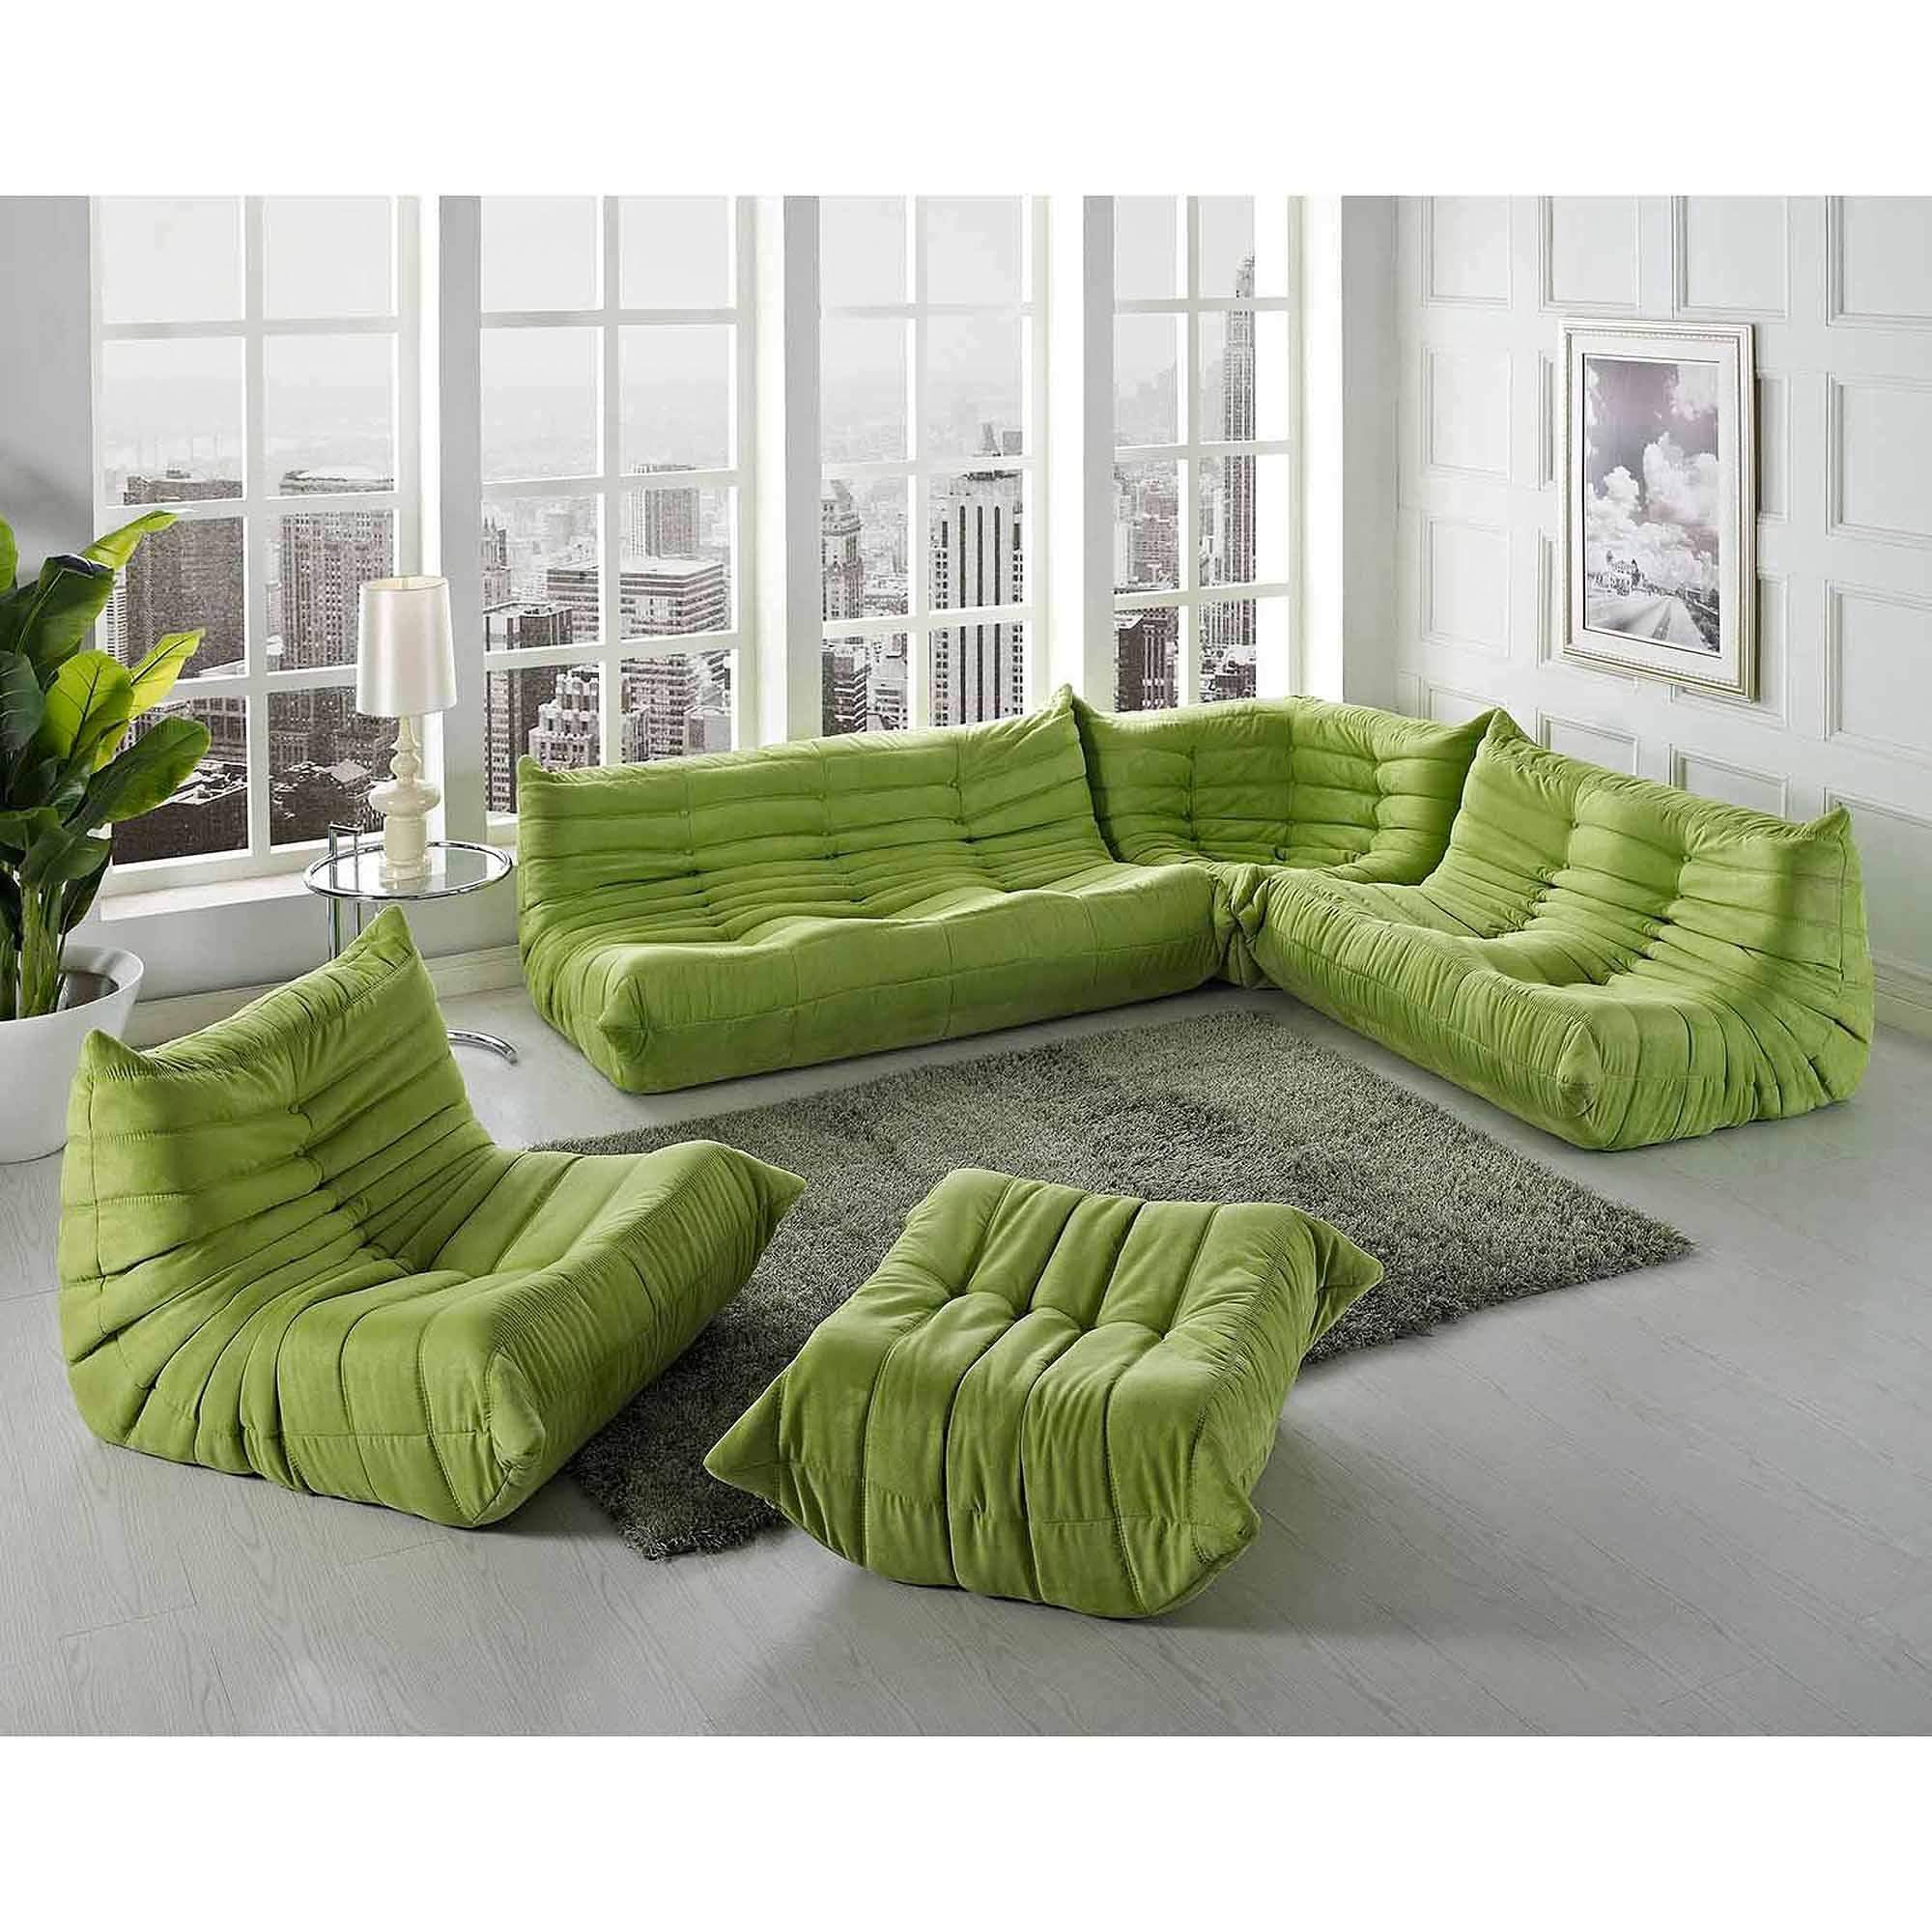 Modway Waverunner Modular Sectional Sofa Set (5 Piece) – Walmart With Green Leather Sectional Sofas (Image 15 of 20)